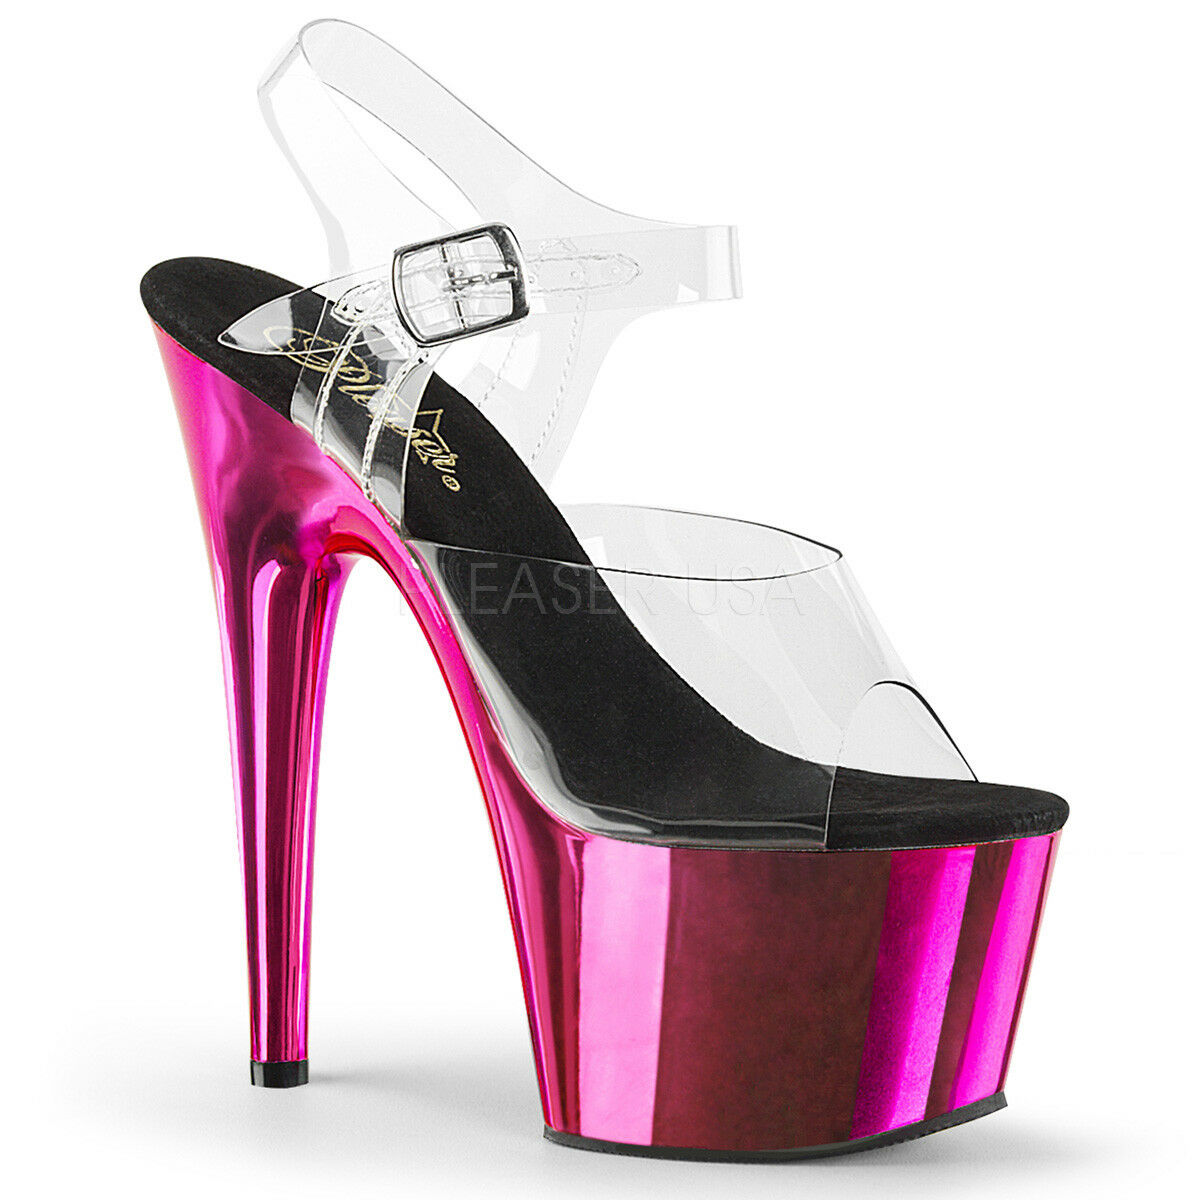 Pleaser ADORE-708 Women's Clear Hot Pink Chrome Heel Platform Ankle Strap Sandal